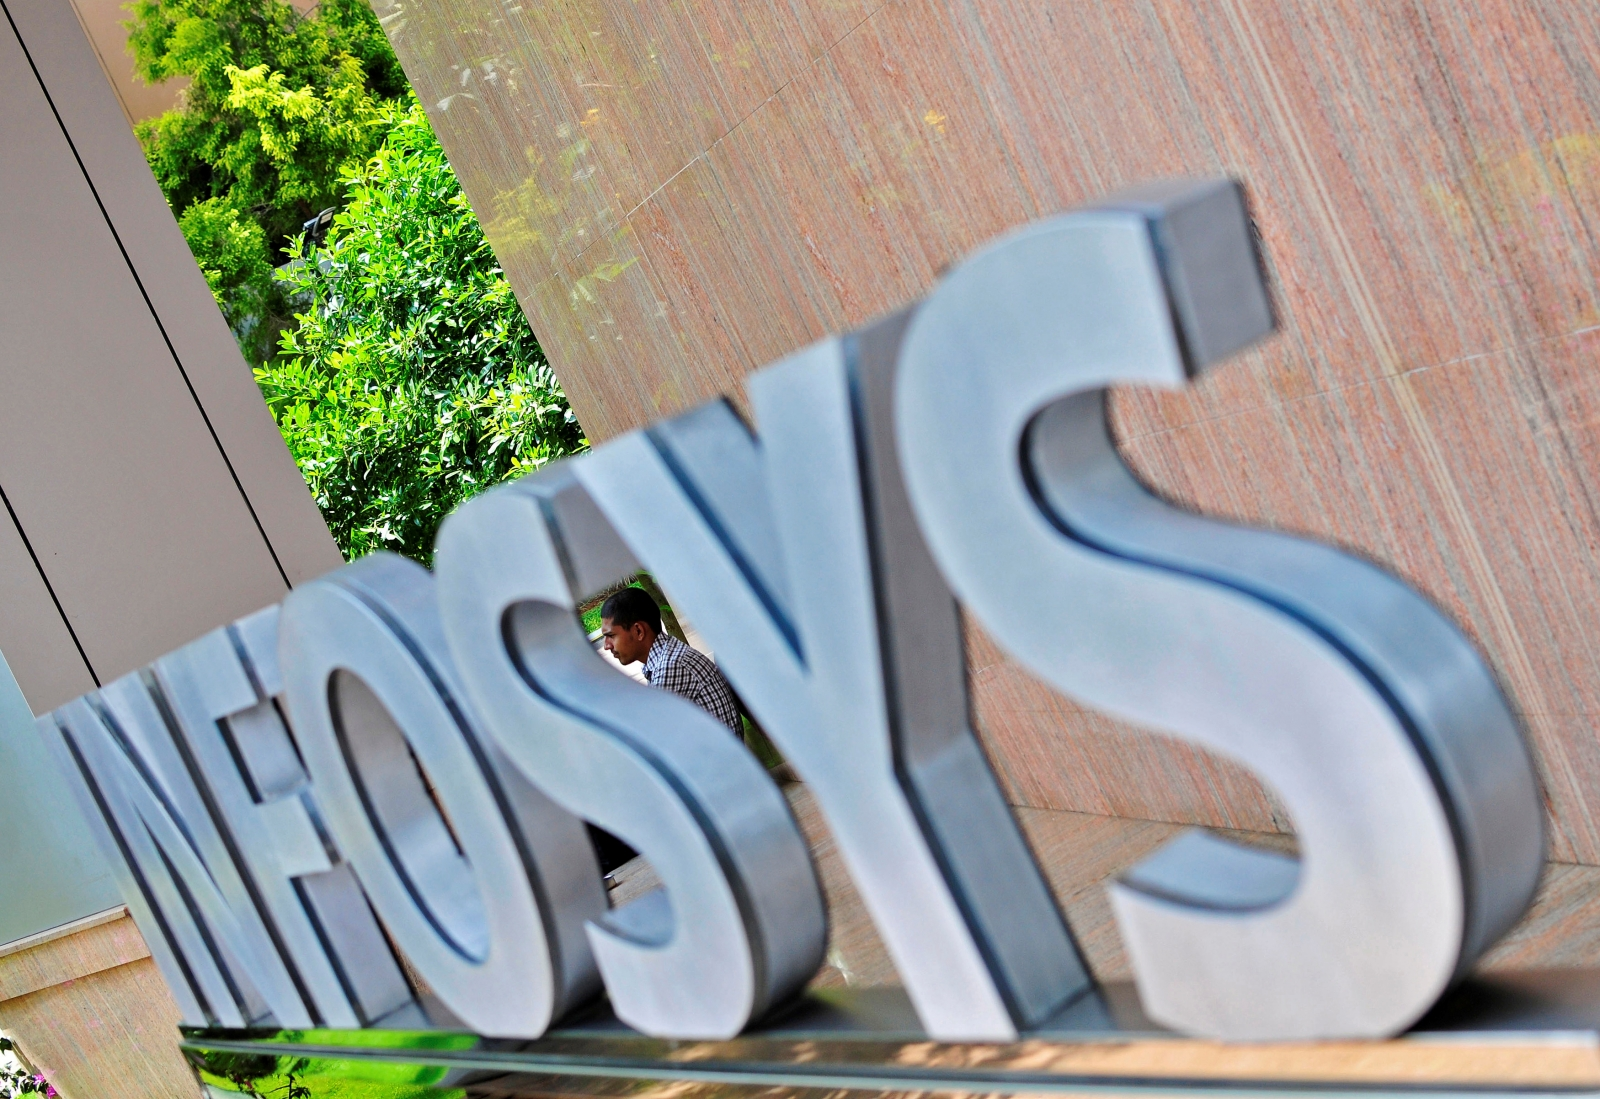 Infosys to hire 10,000 US employees